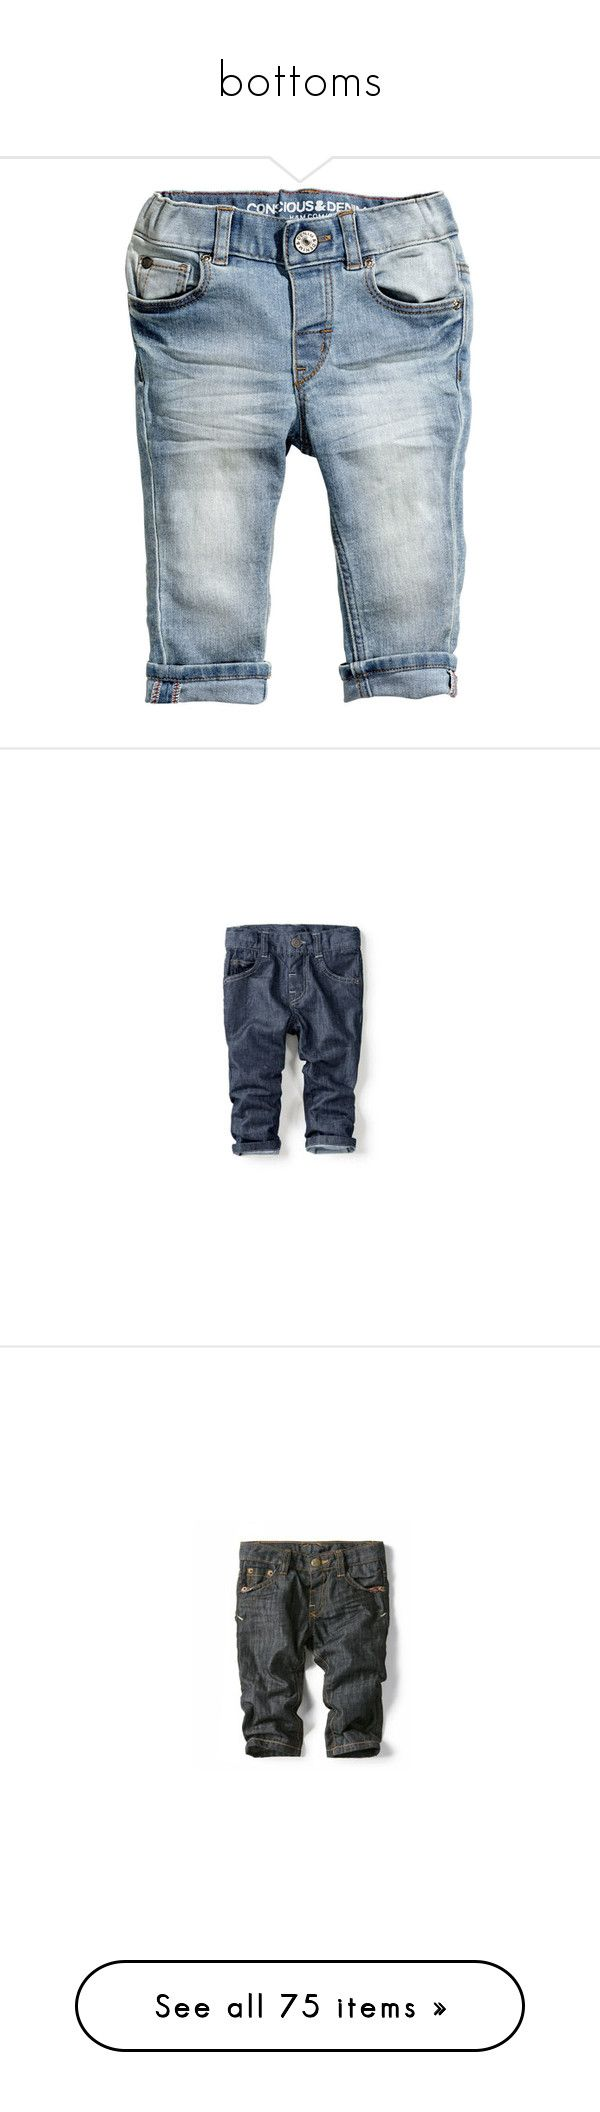 """bottoms"" by beyondunkwn ❤ liked on Polyvore featuring baby boy, kids, baby, baby clothes, boys, baby boy clothes, pants, babyboy, h&m trousers and checked trousers"